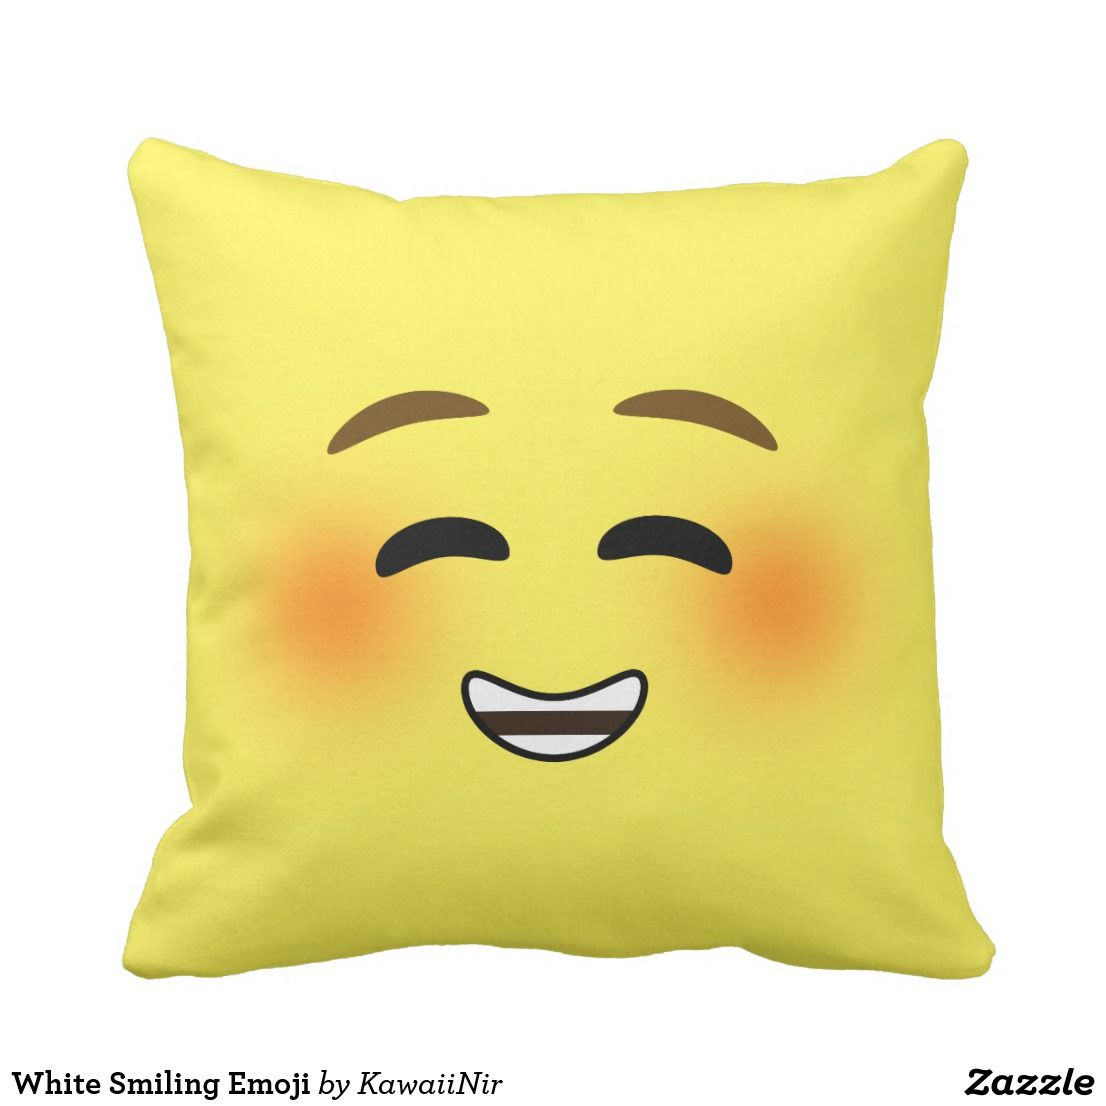 White smiling emoji throw pillow emoji pillows pinterest emoji